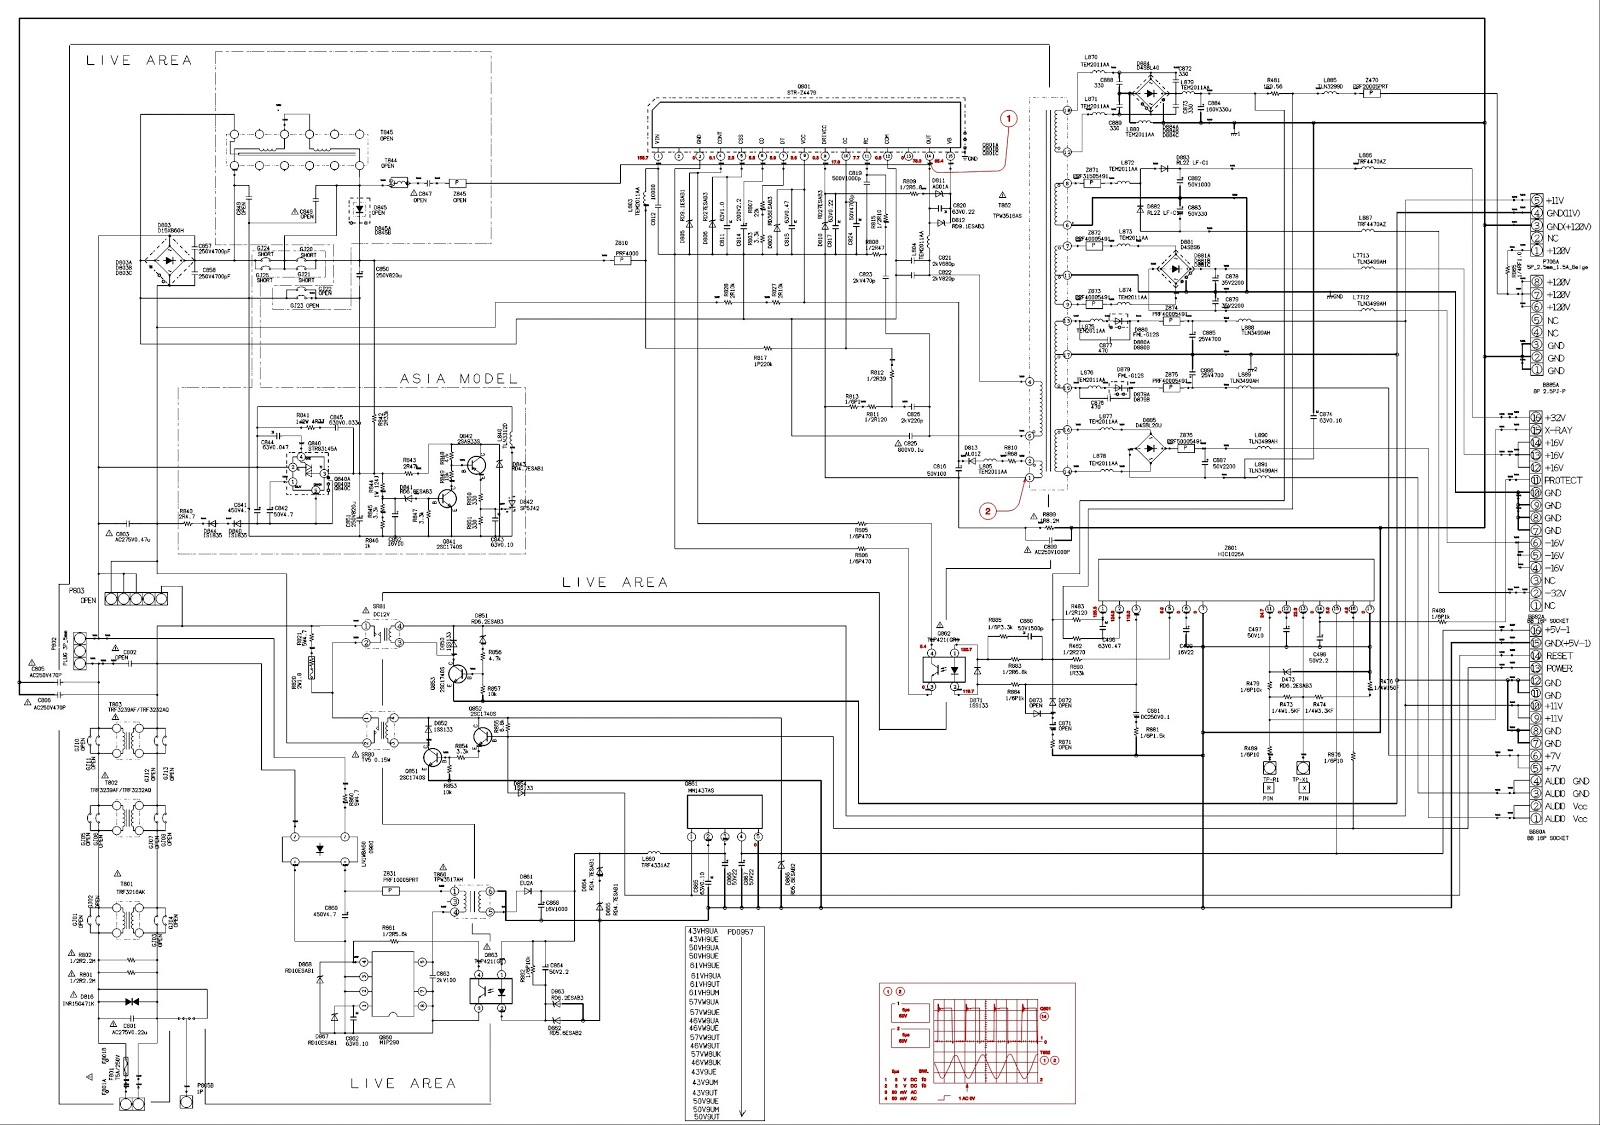 power%2B %2Bsmps toshiba 50 inch projection tv smps schematic electro help toshiba motor wiring diagram at readyjetset.co